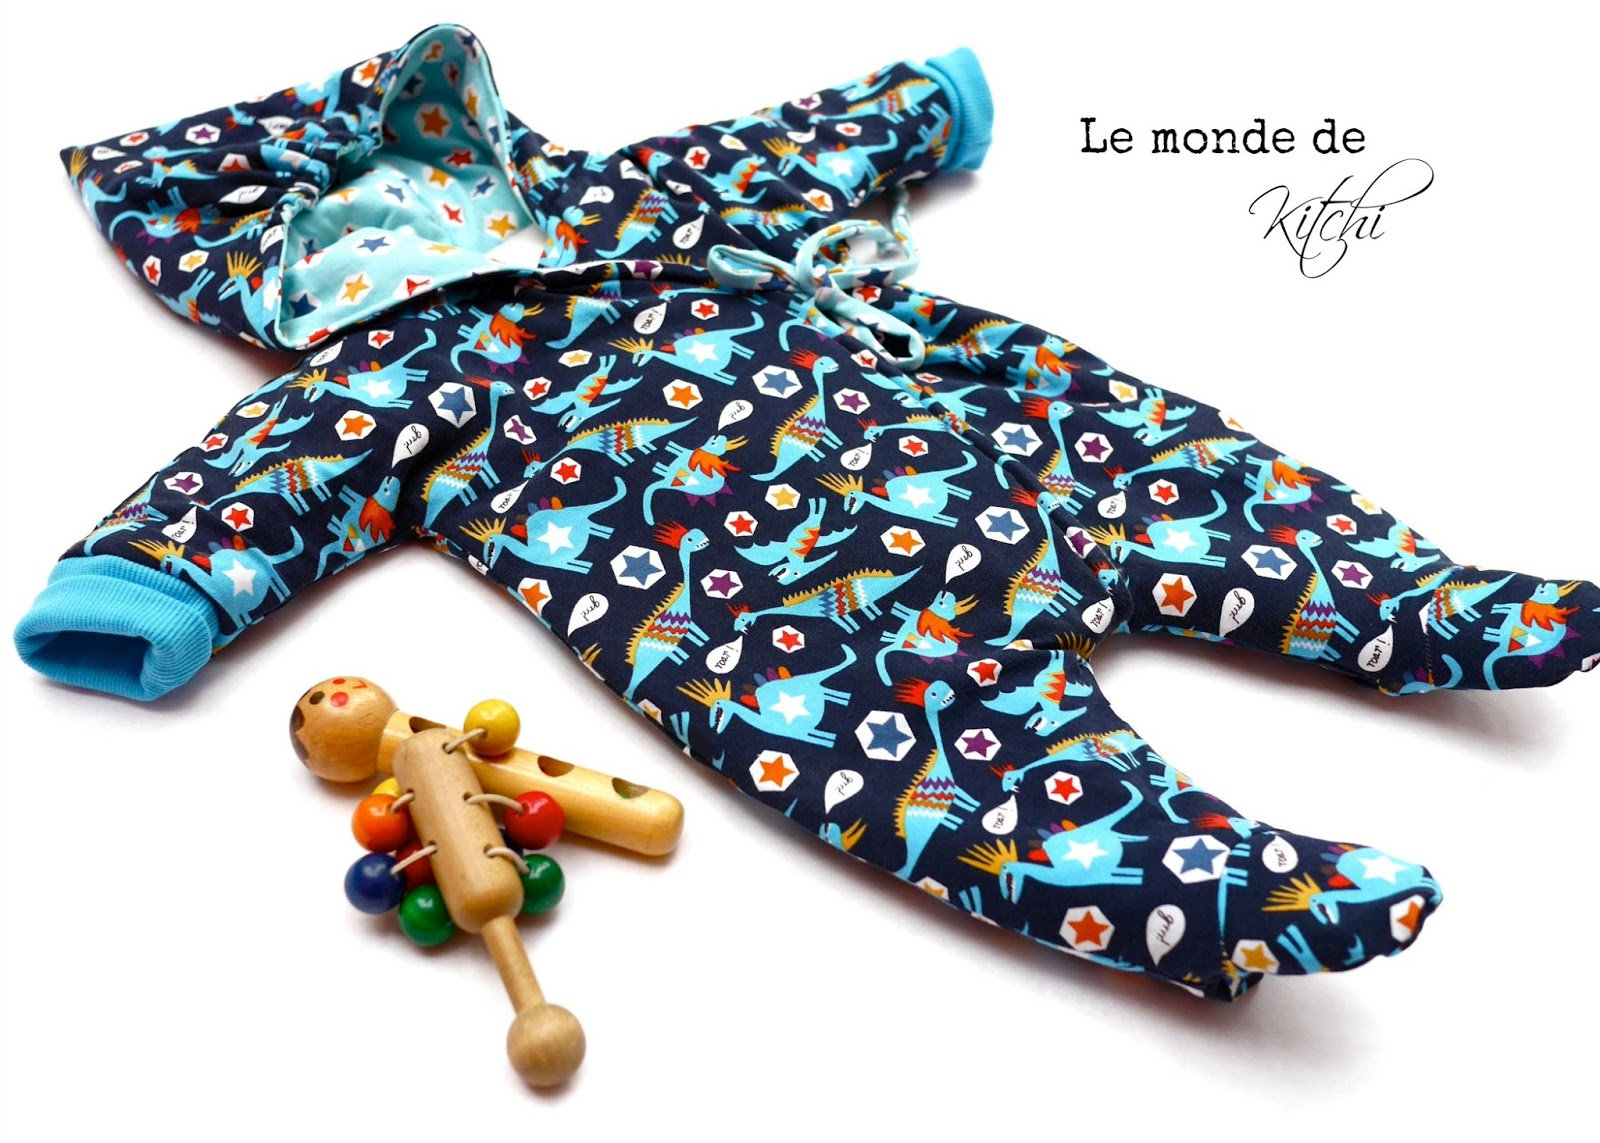 Le monde de Kitchi: Babyoverall/ One pin a week # 9